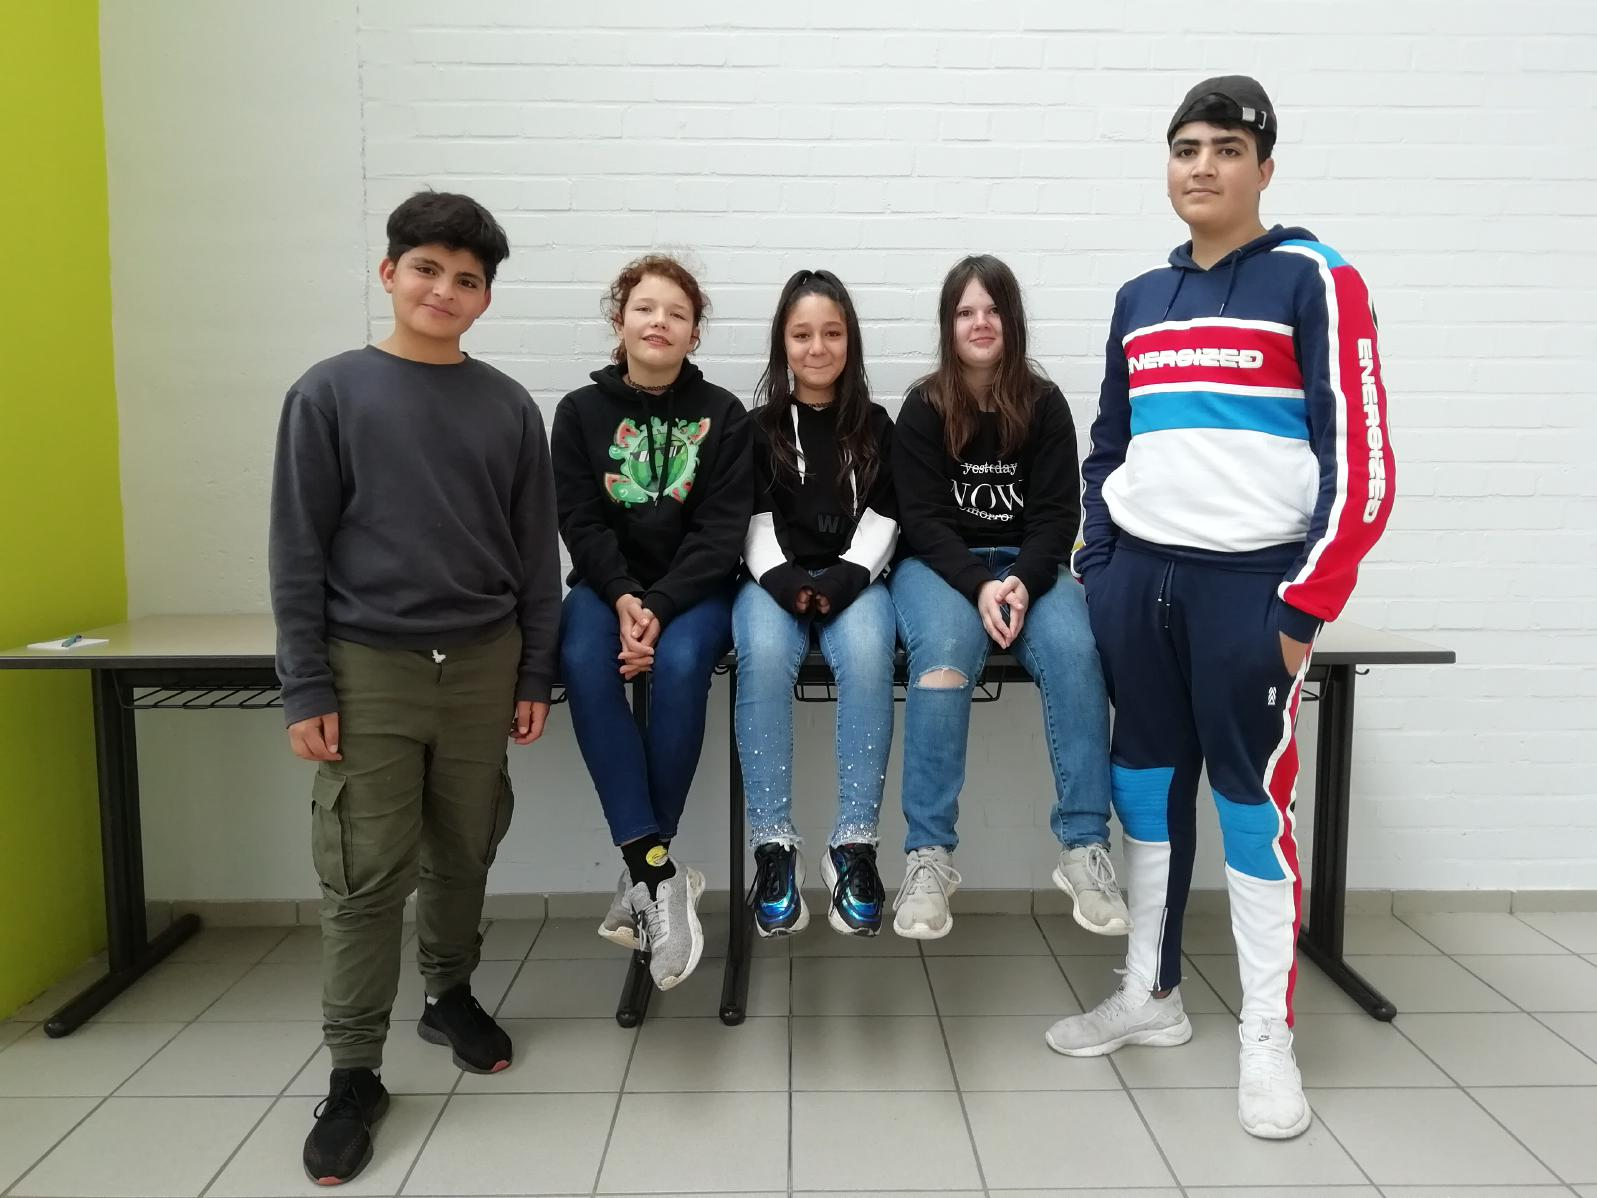 Unsere SMV v.l.n.r.: Maher, Leonie, Andrea, Vanessa, Ahmed.